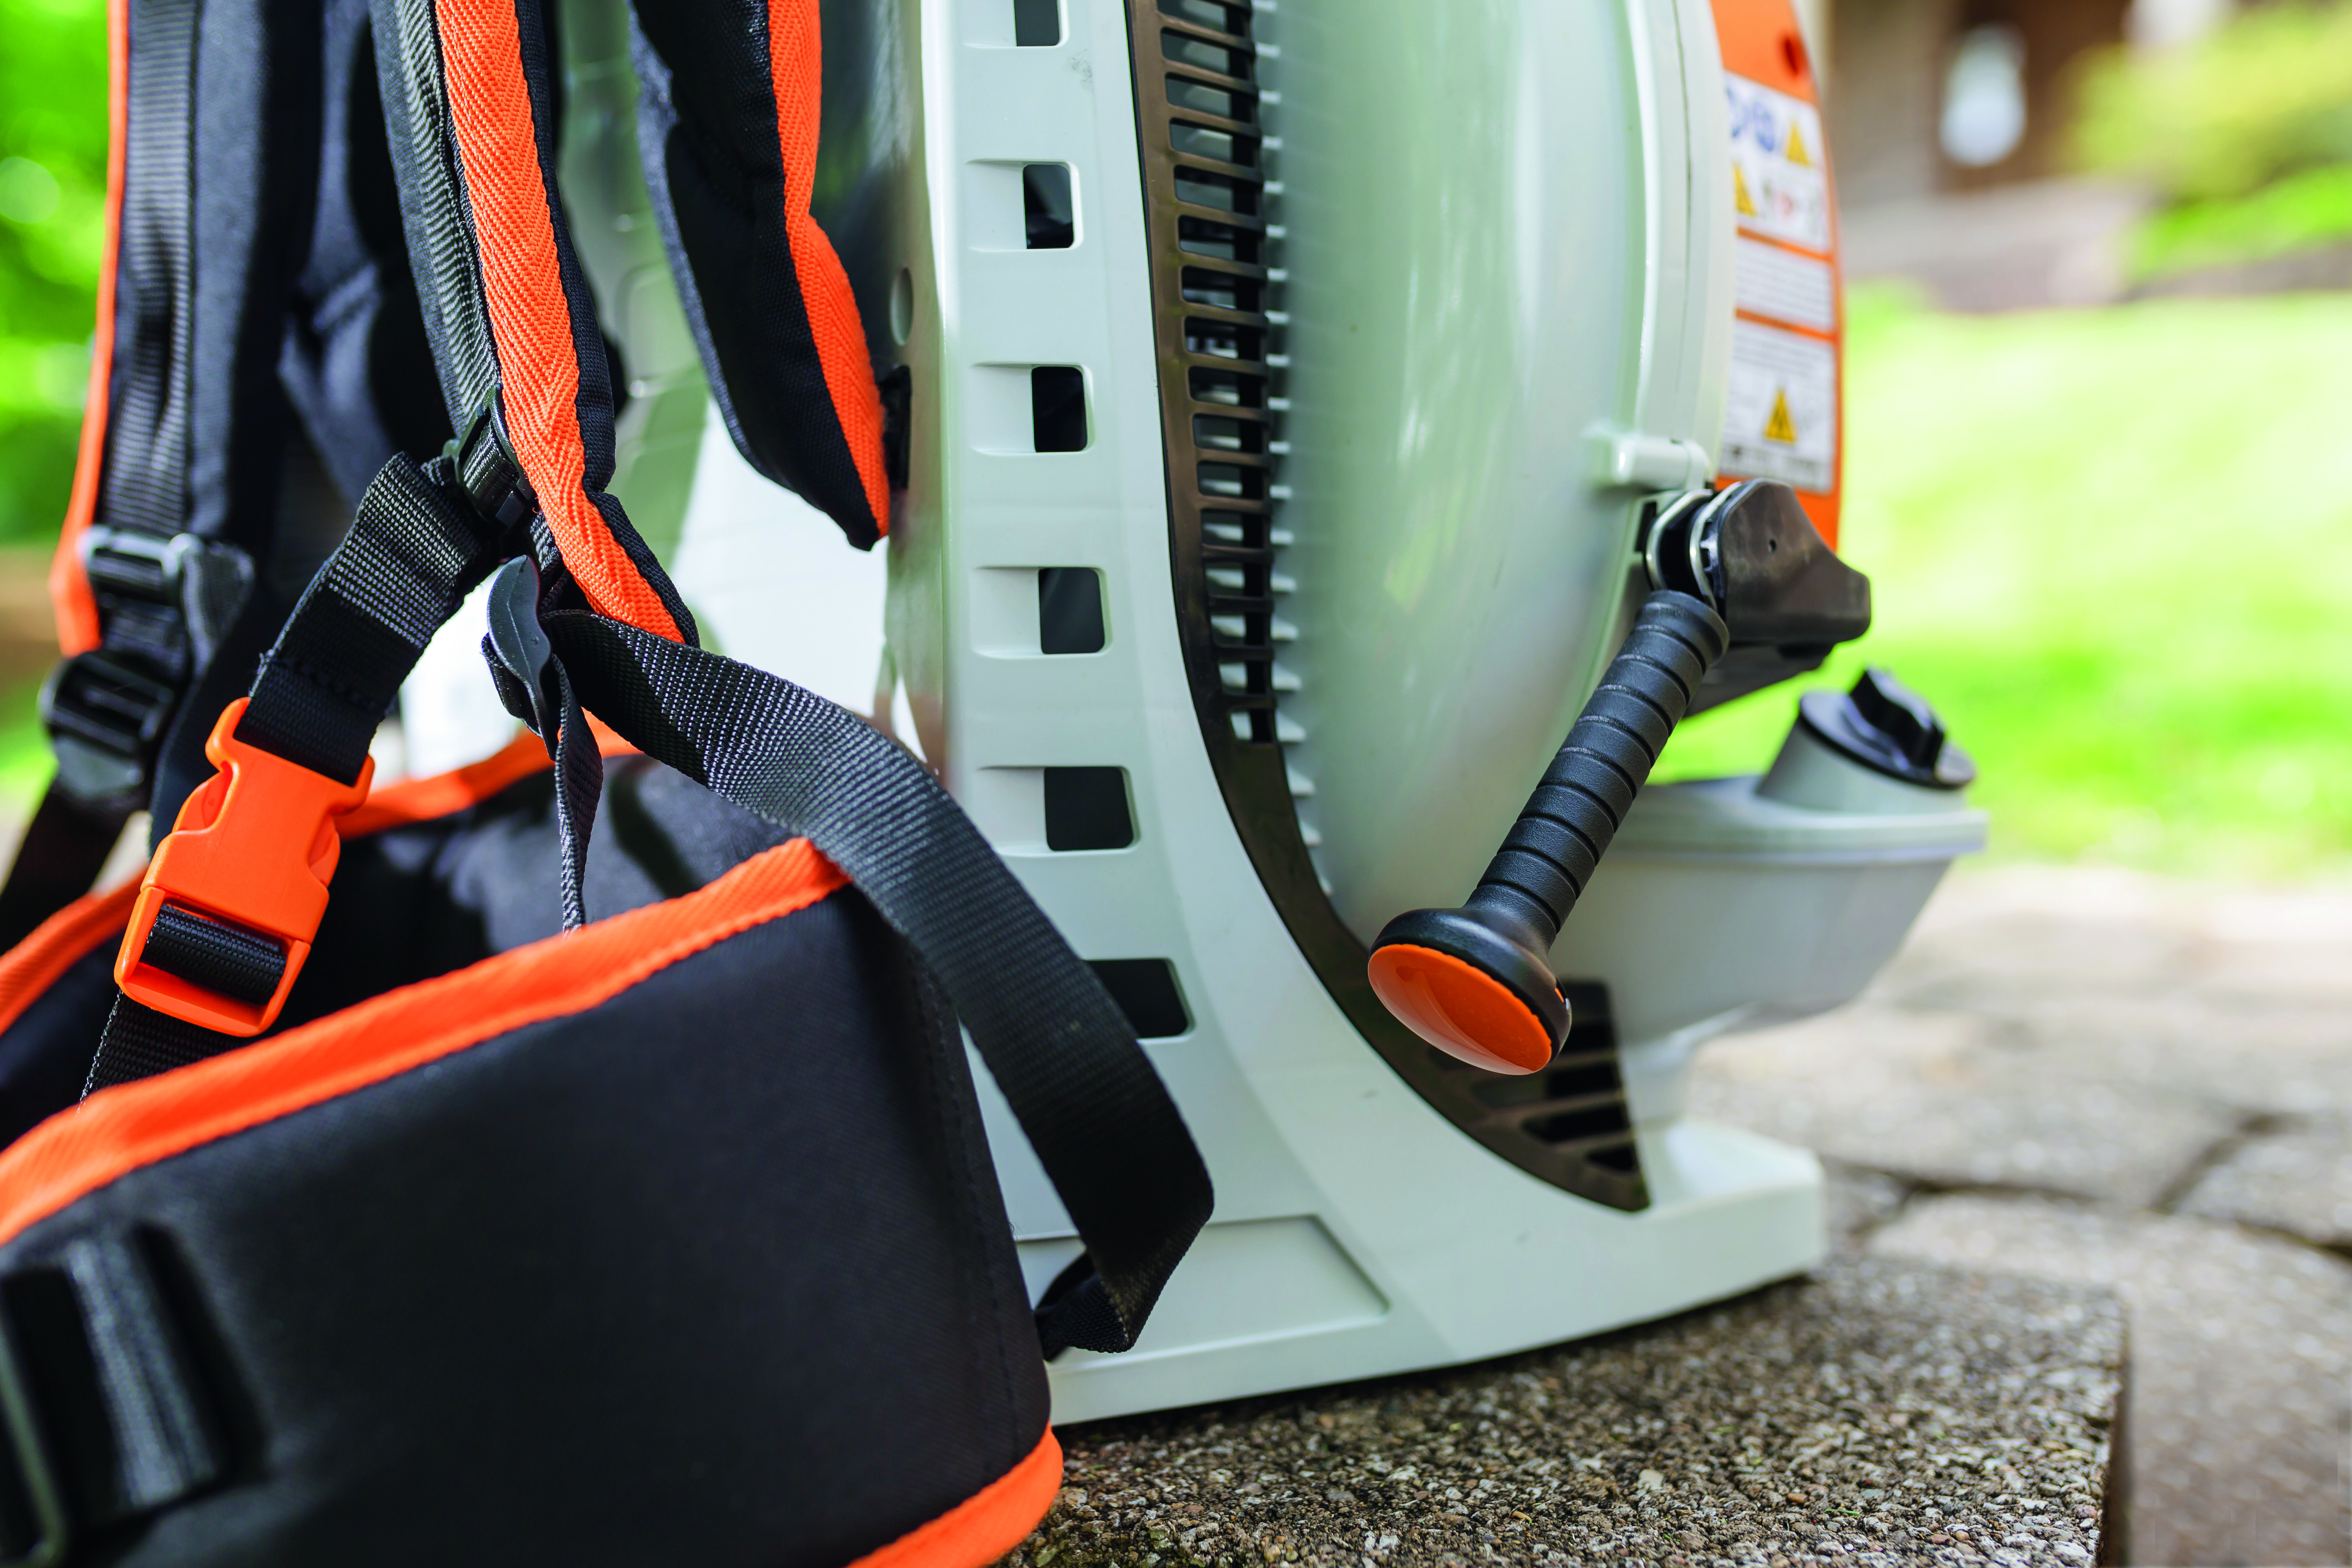 Stihl adds on to both its gas- and battery-powered products